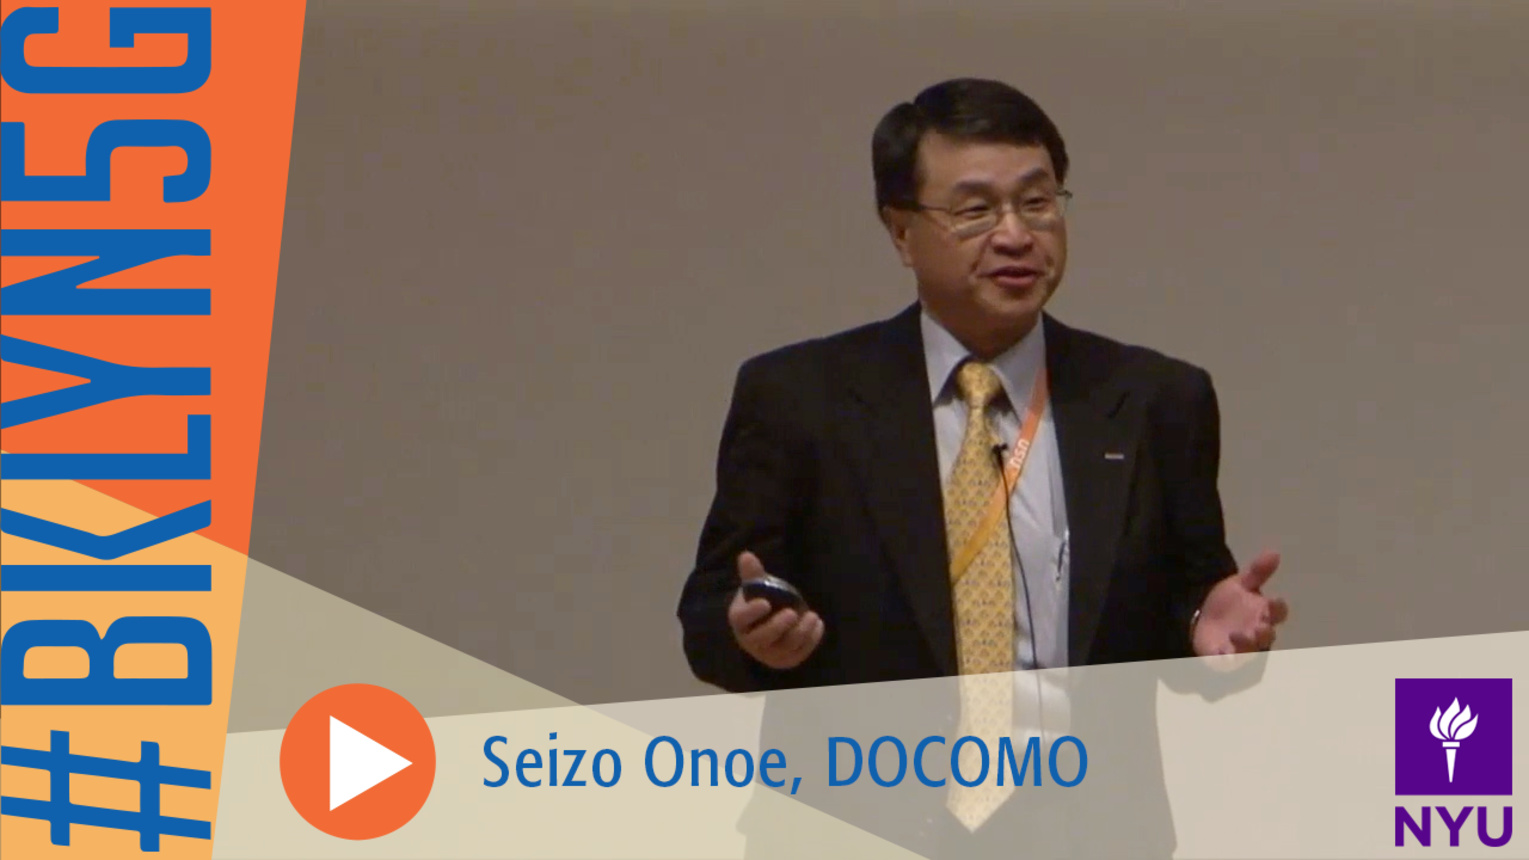 The Brooklyn 5G Summit: Dr. Seizo Onoe from DOCOMO